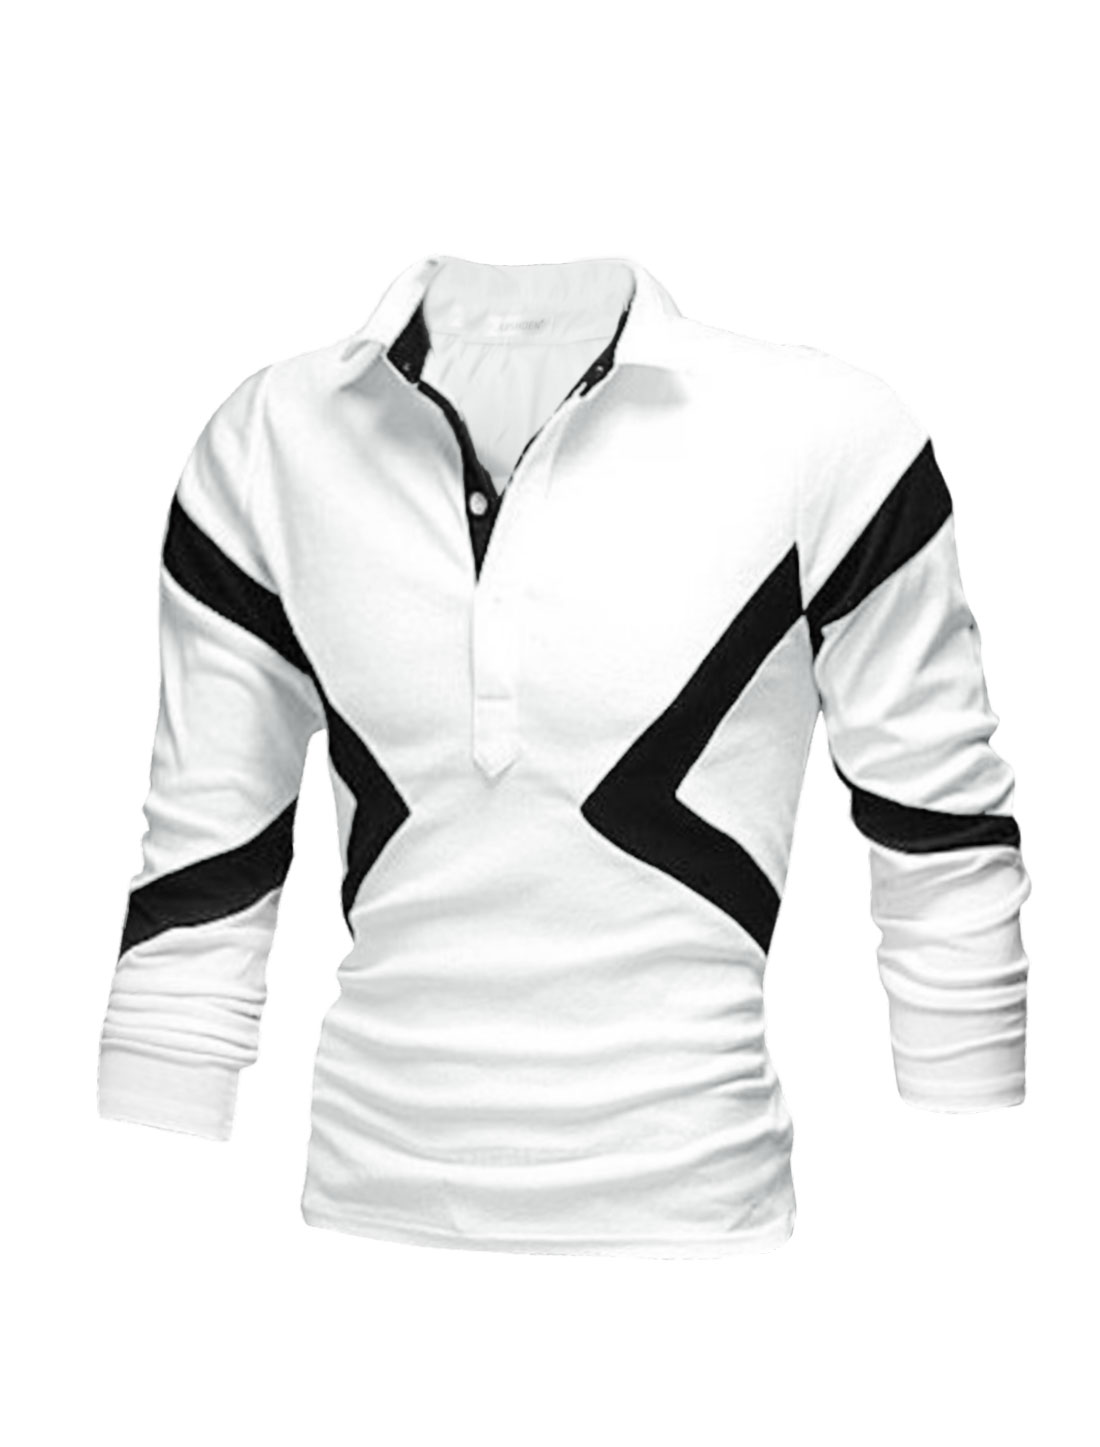 Man Collared Short Sleeves Contrast Color Slim Fit Polo Shirt White M